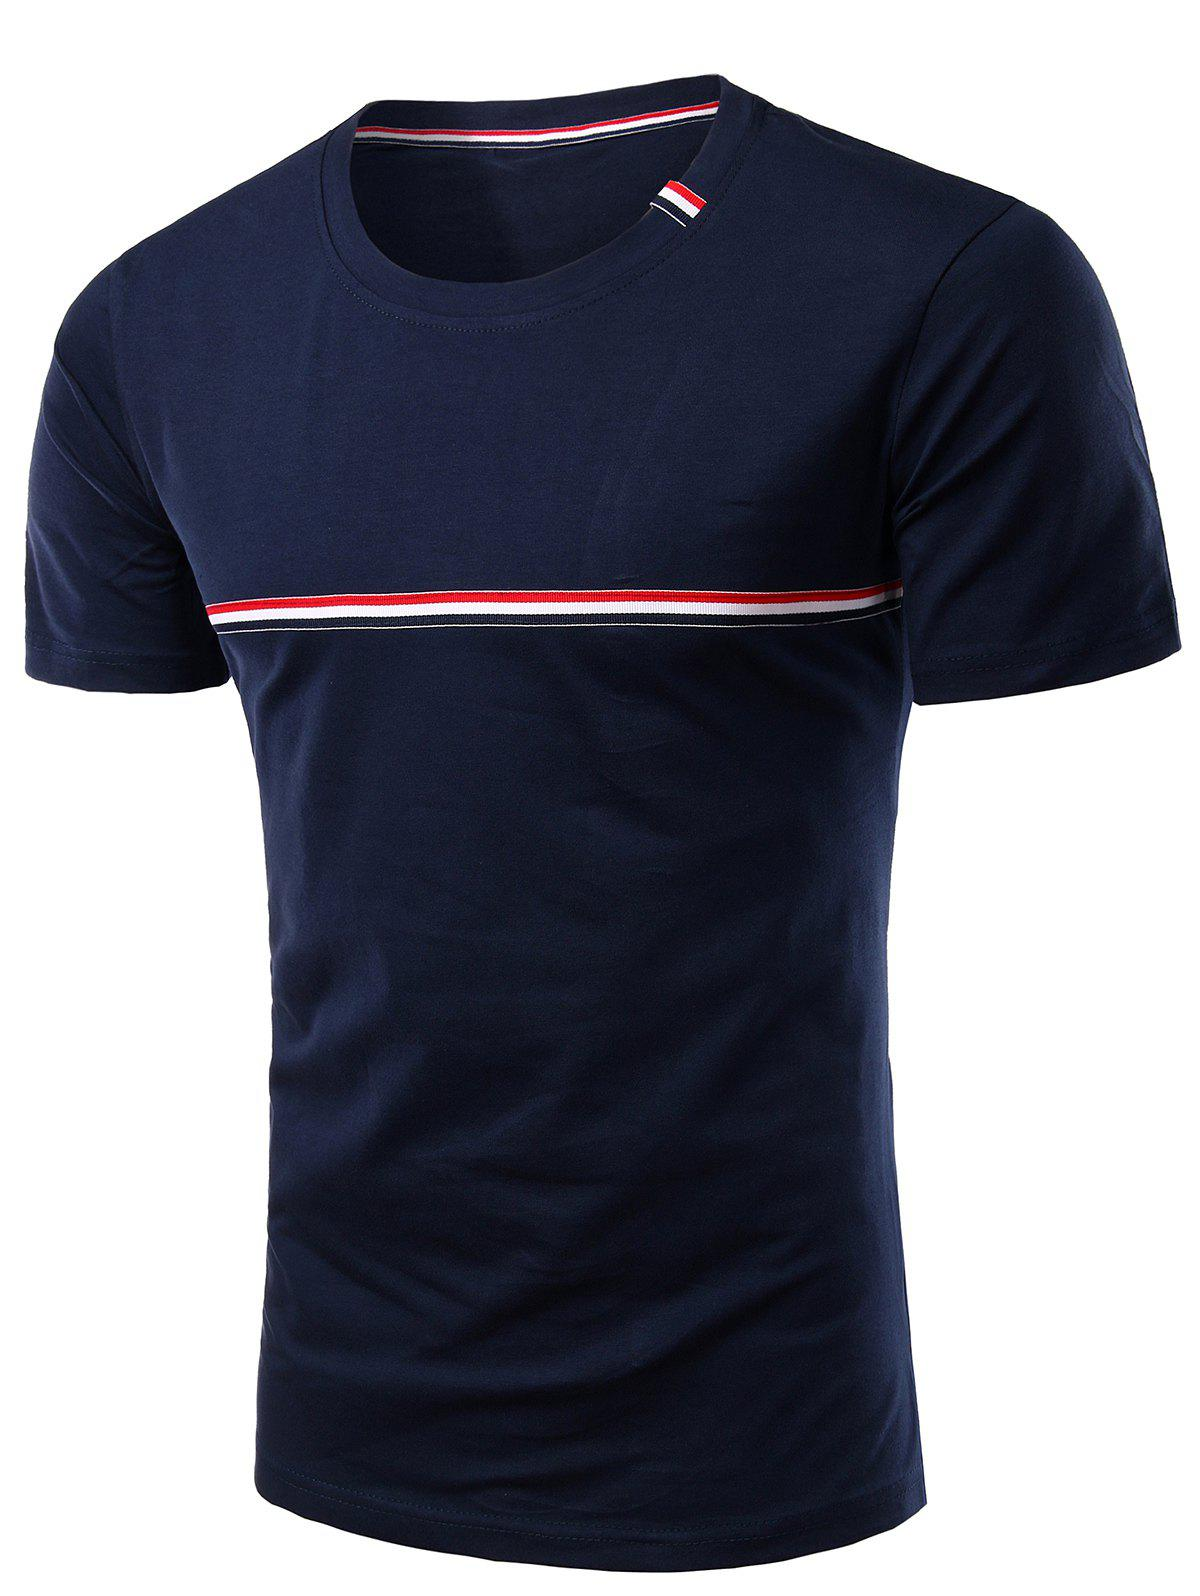 Trendy Round Neck Striped Printed Short Sleeve T-Shirt For Men